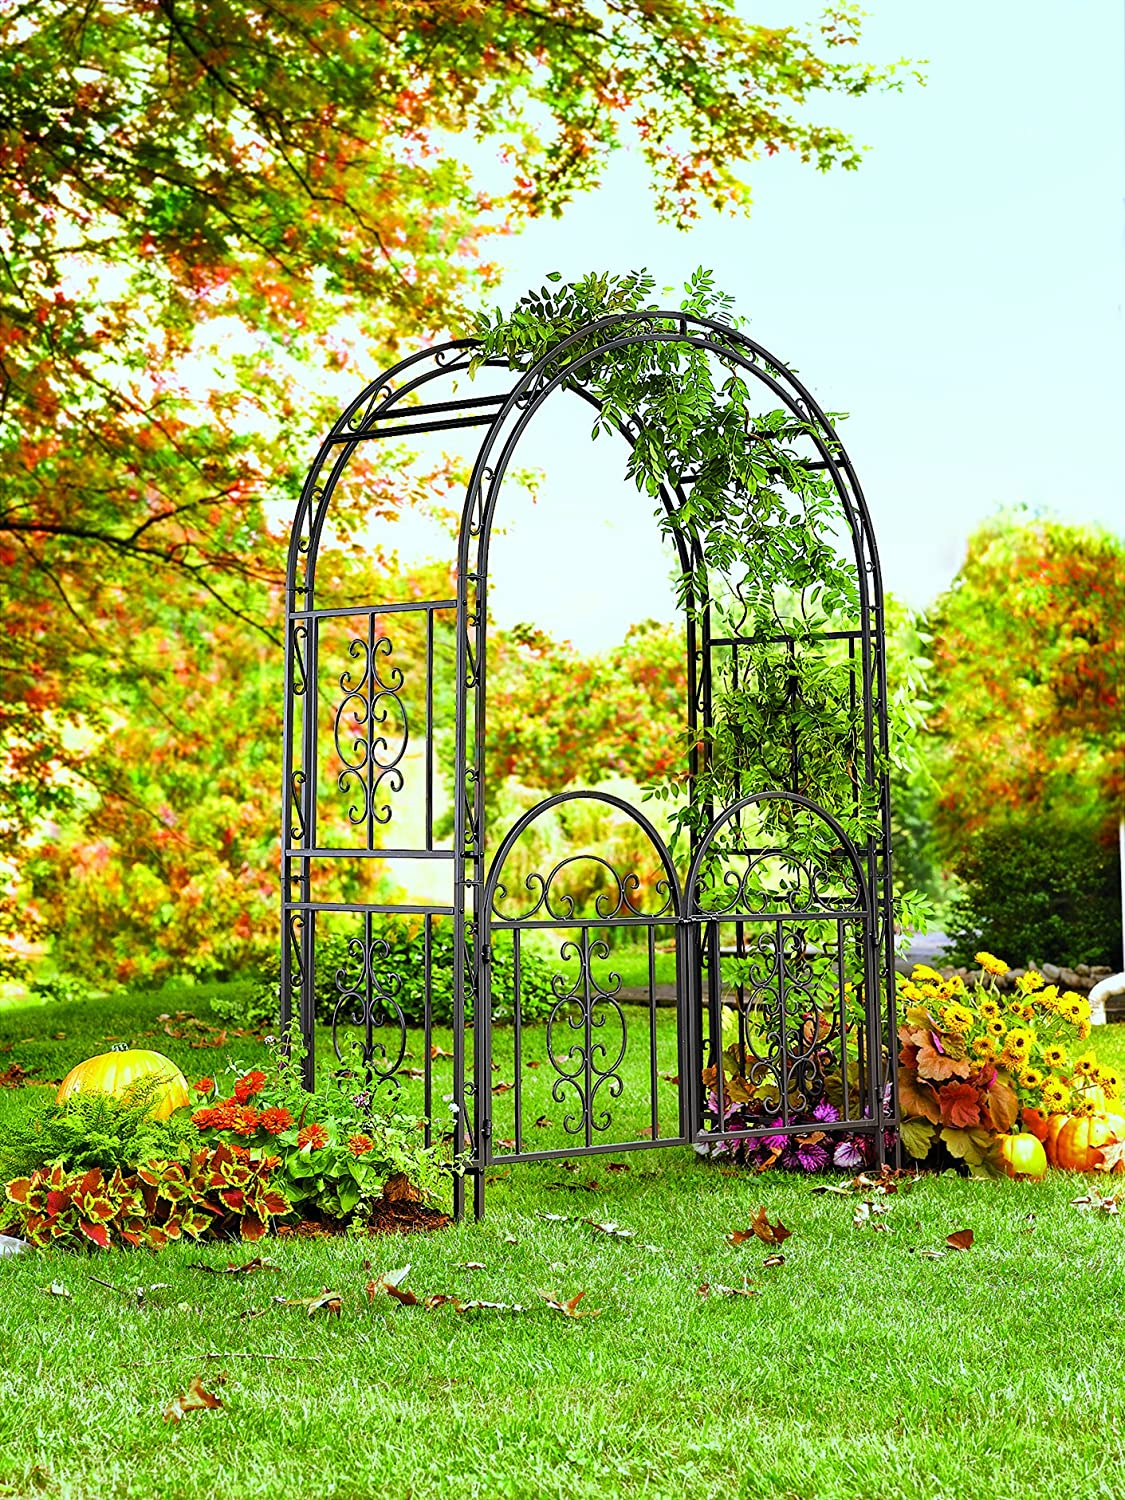 home arbor arch on creates rose landscaping picket with gate decoration pinterest style cottage arbors images of gallery plans combined best outdoor white design gardening and the a fence archway use garden